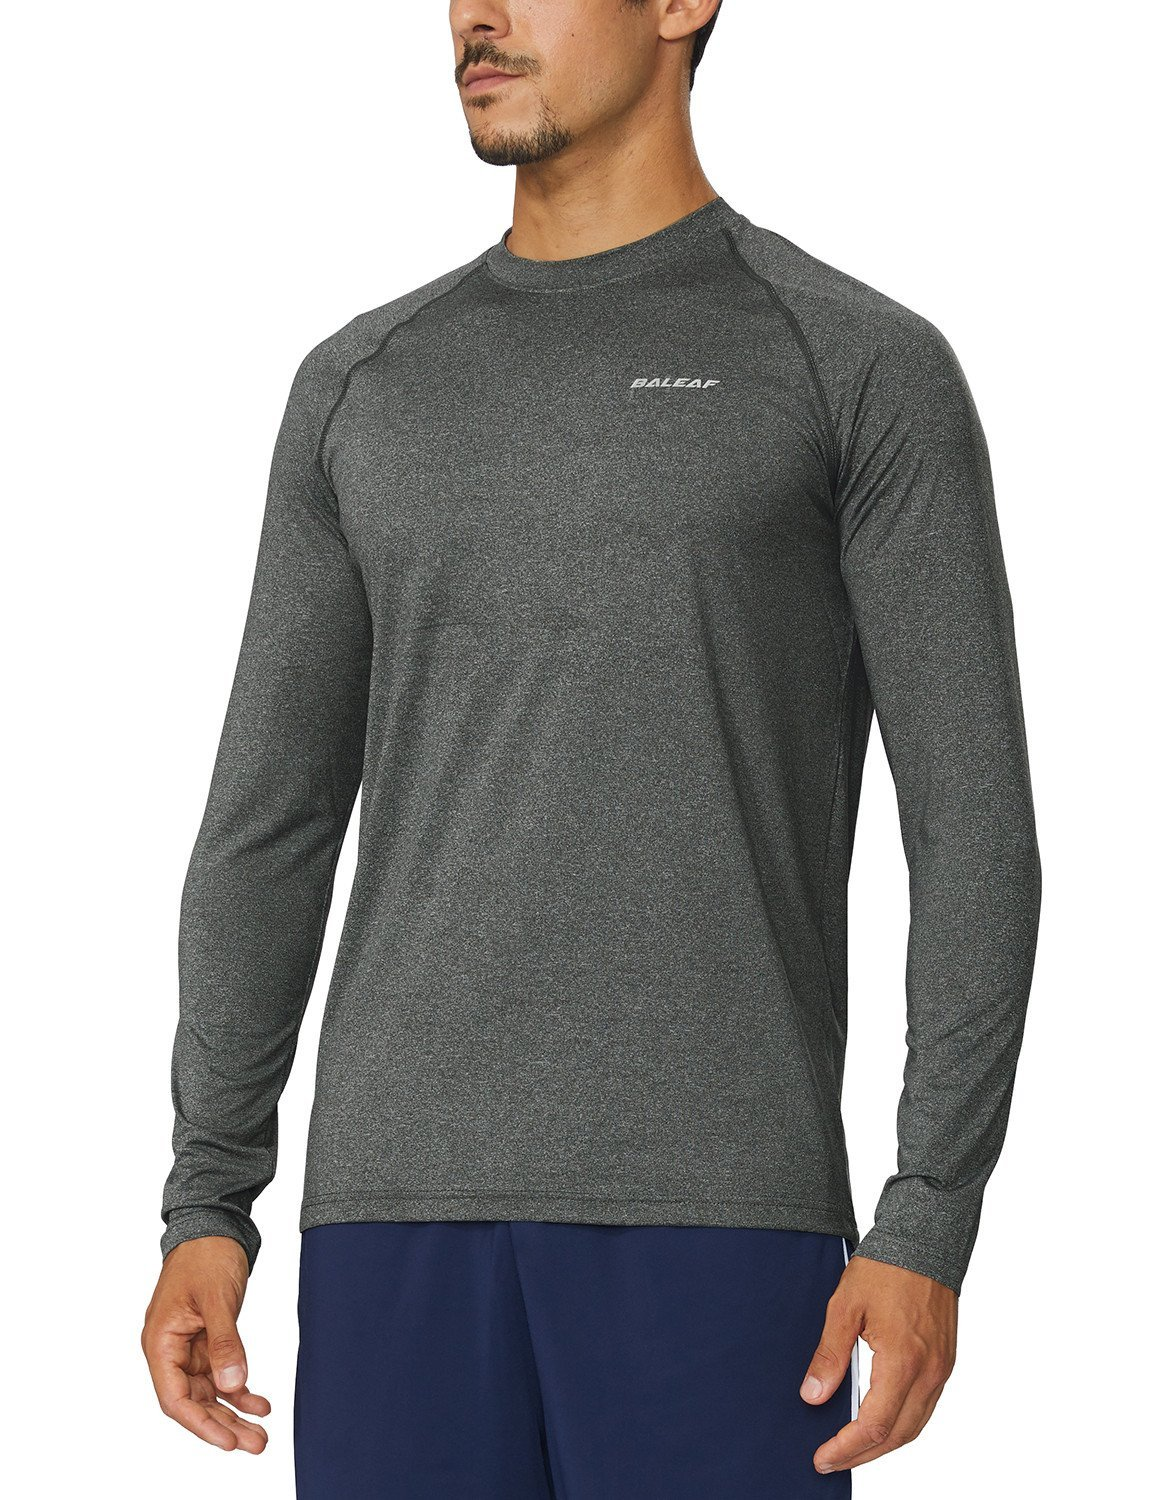 Baleaf Men's Cool Running Workout Long Sleeve T-Shirt Grey Heather Size L by Baleaf